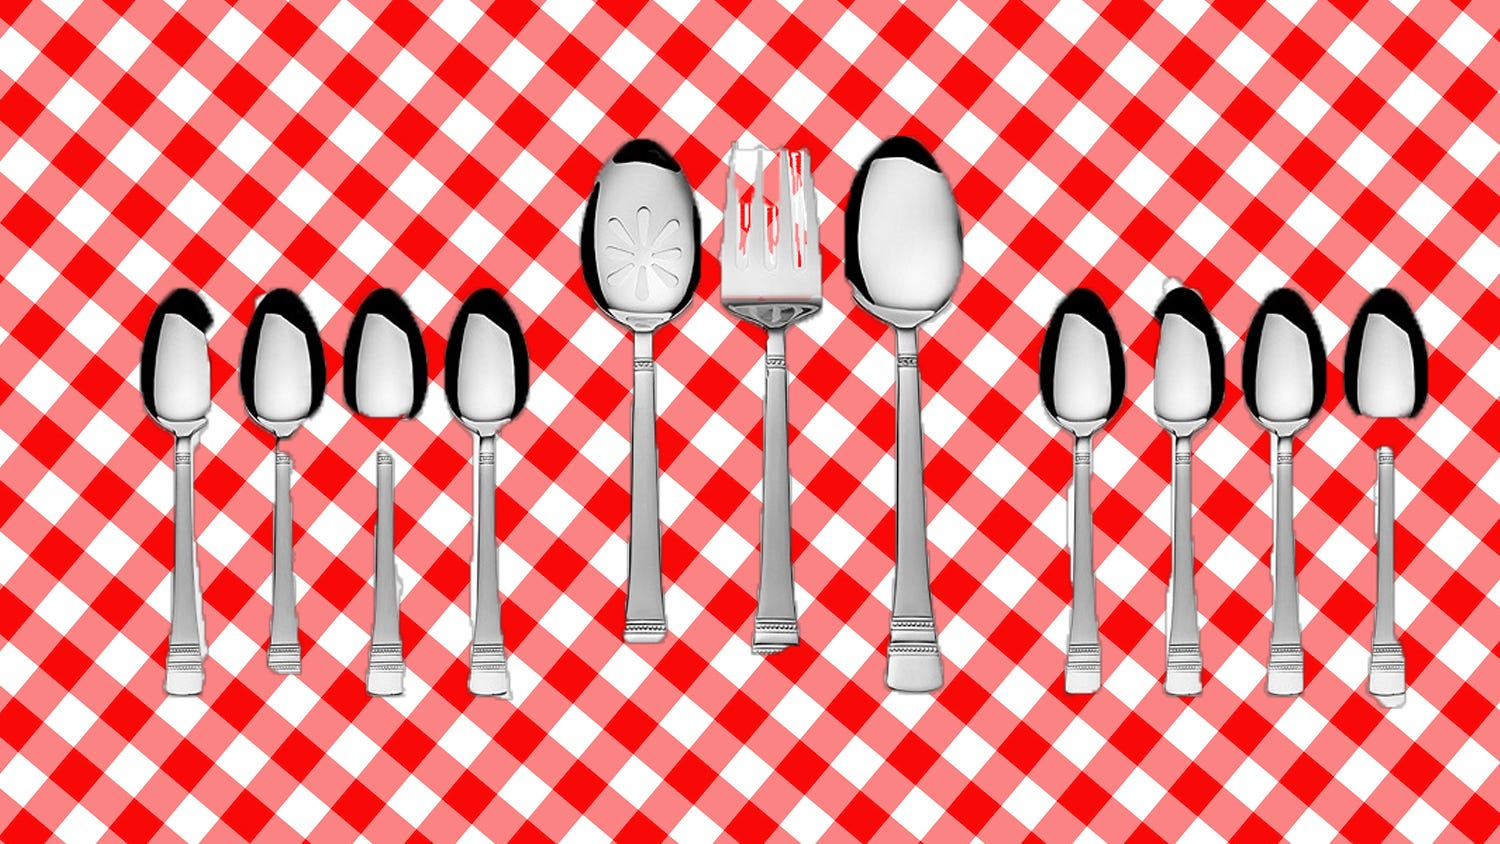 You can get 51-piece silverware sets from $30 right now at Macy's